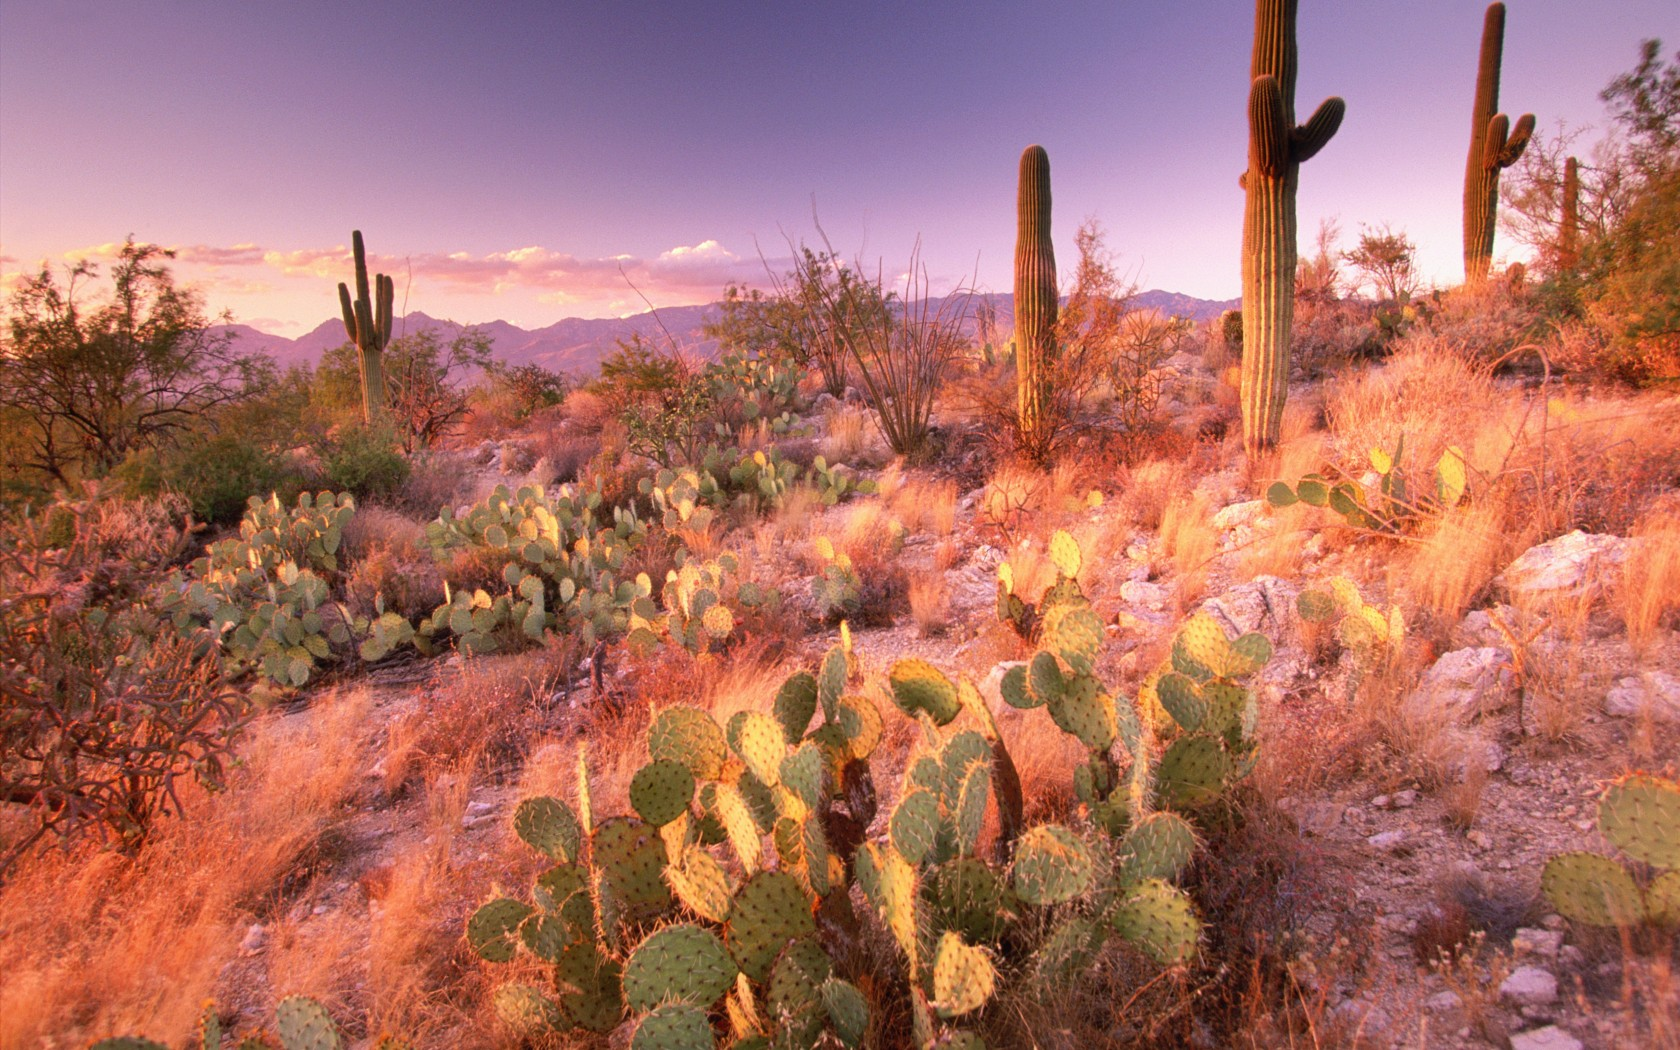 Best 41 Saguaro National Park Wallpaper on HipWallpaper 1680x1050